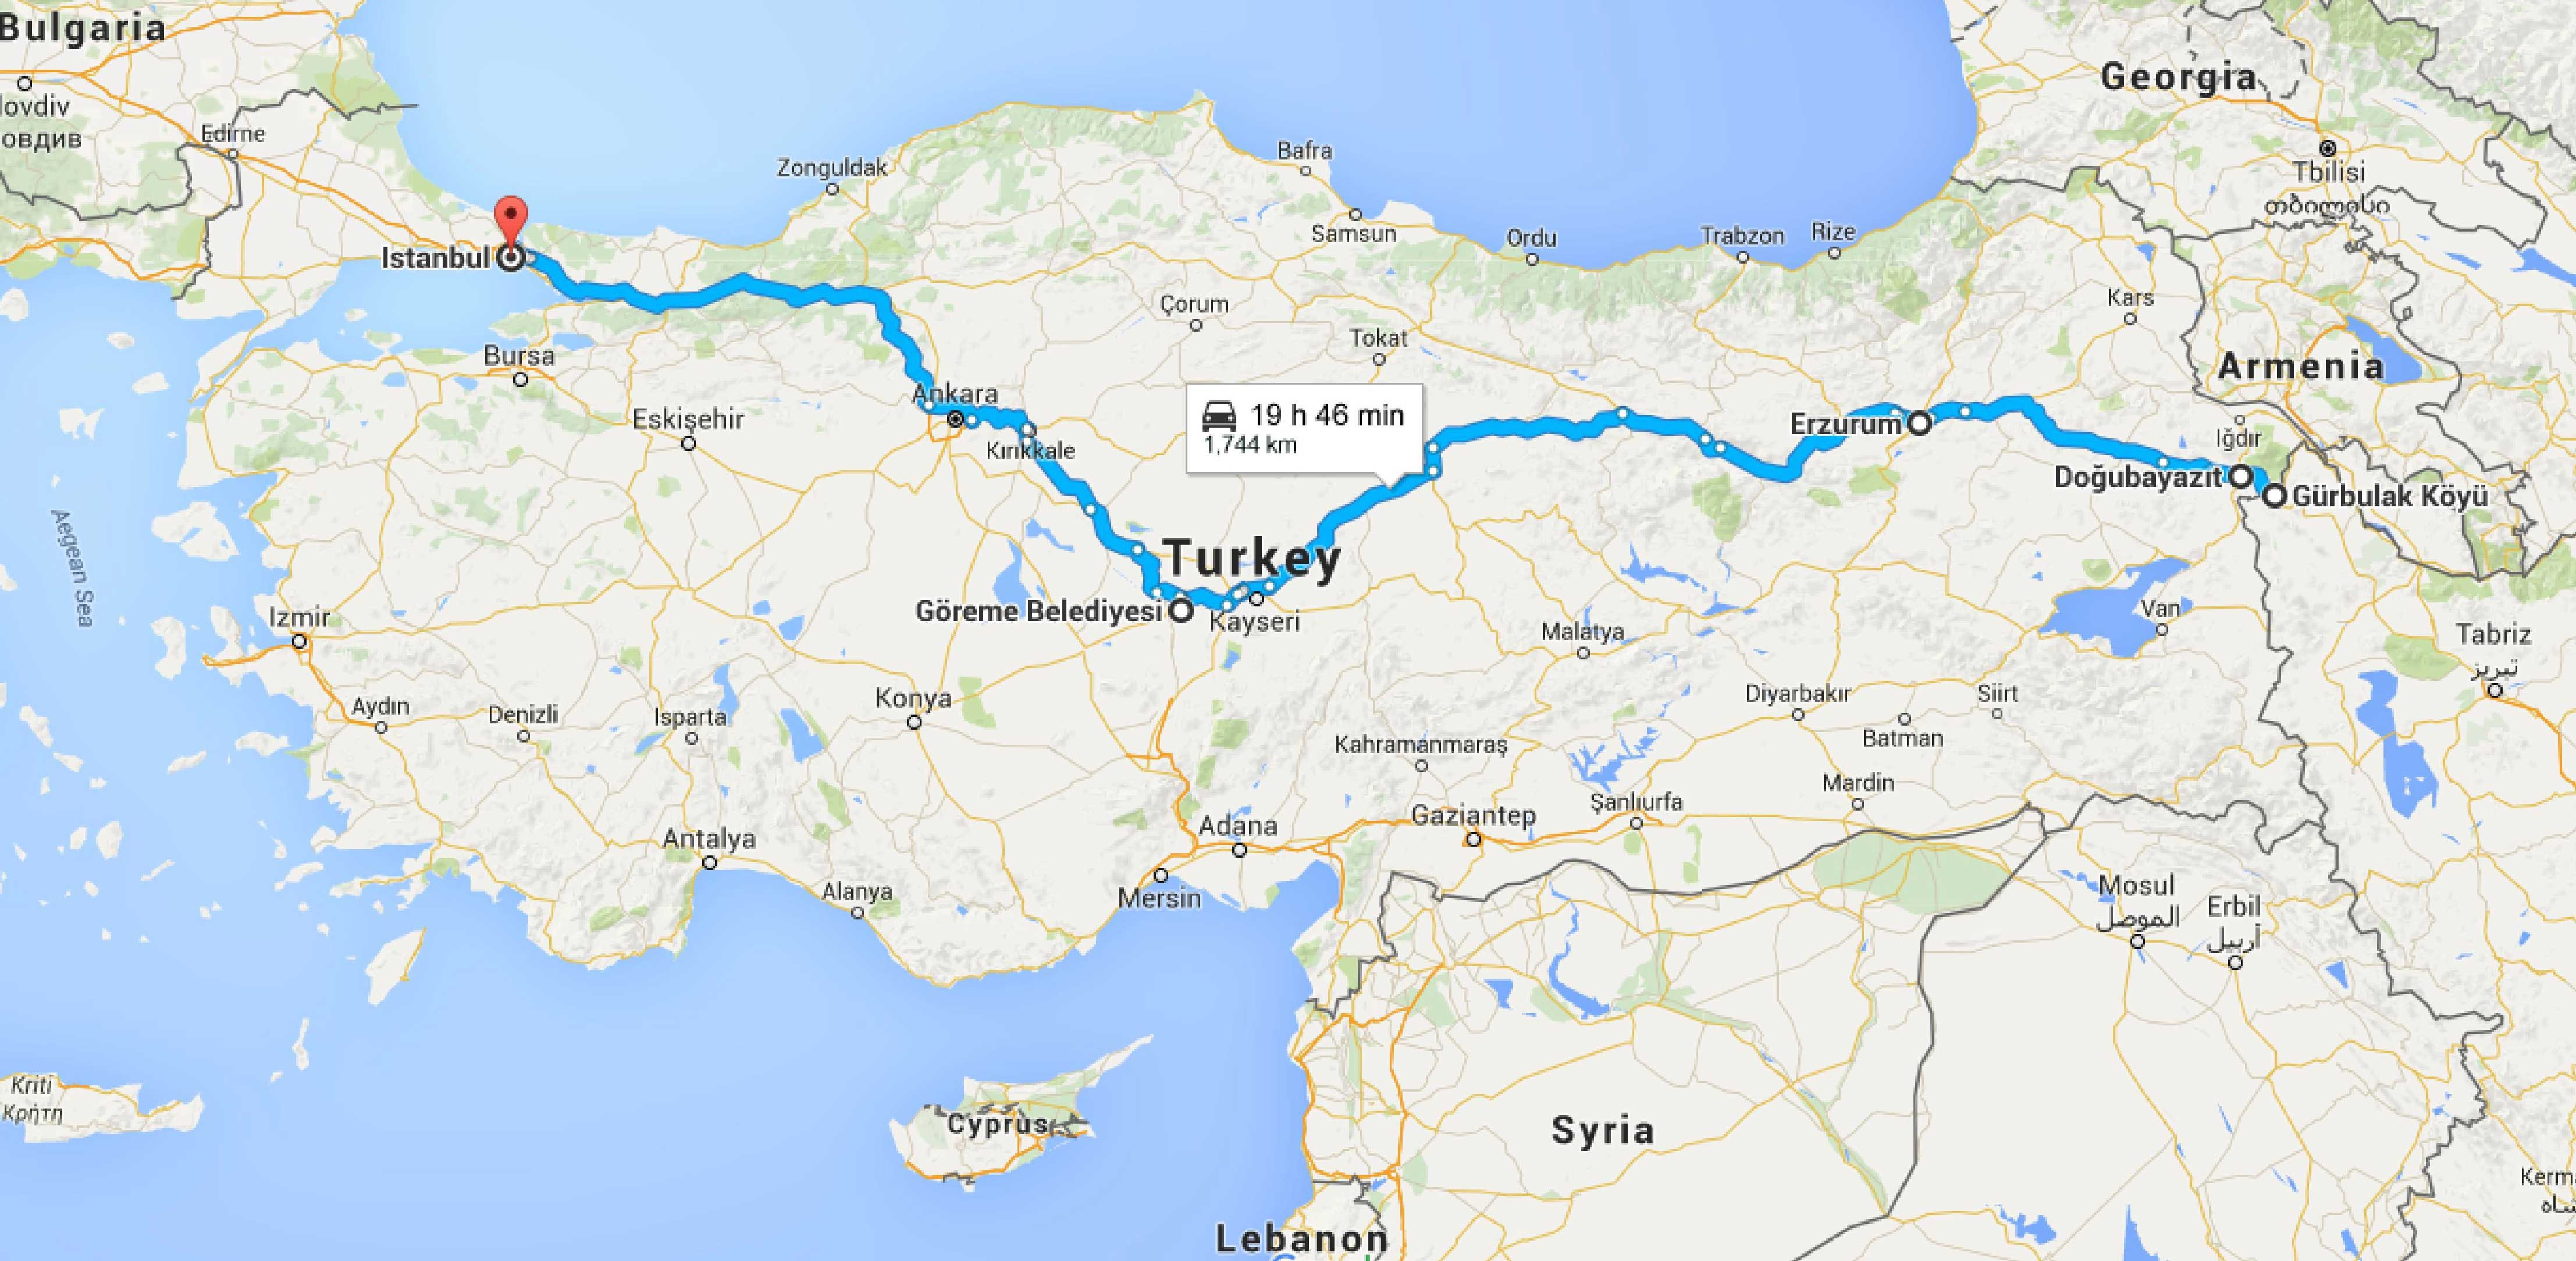 15 days in Turkey: maps, costs and itinerary